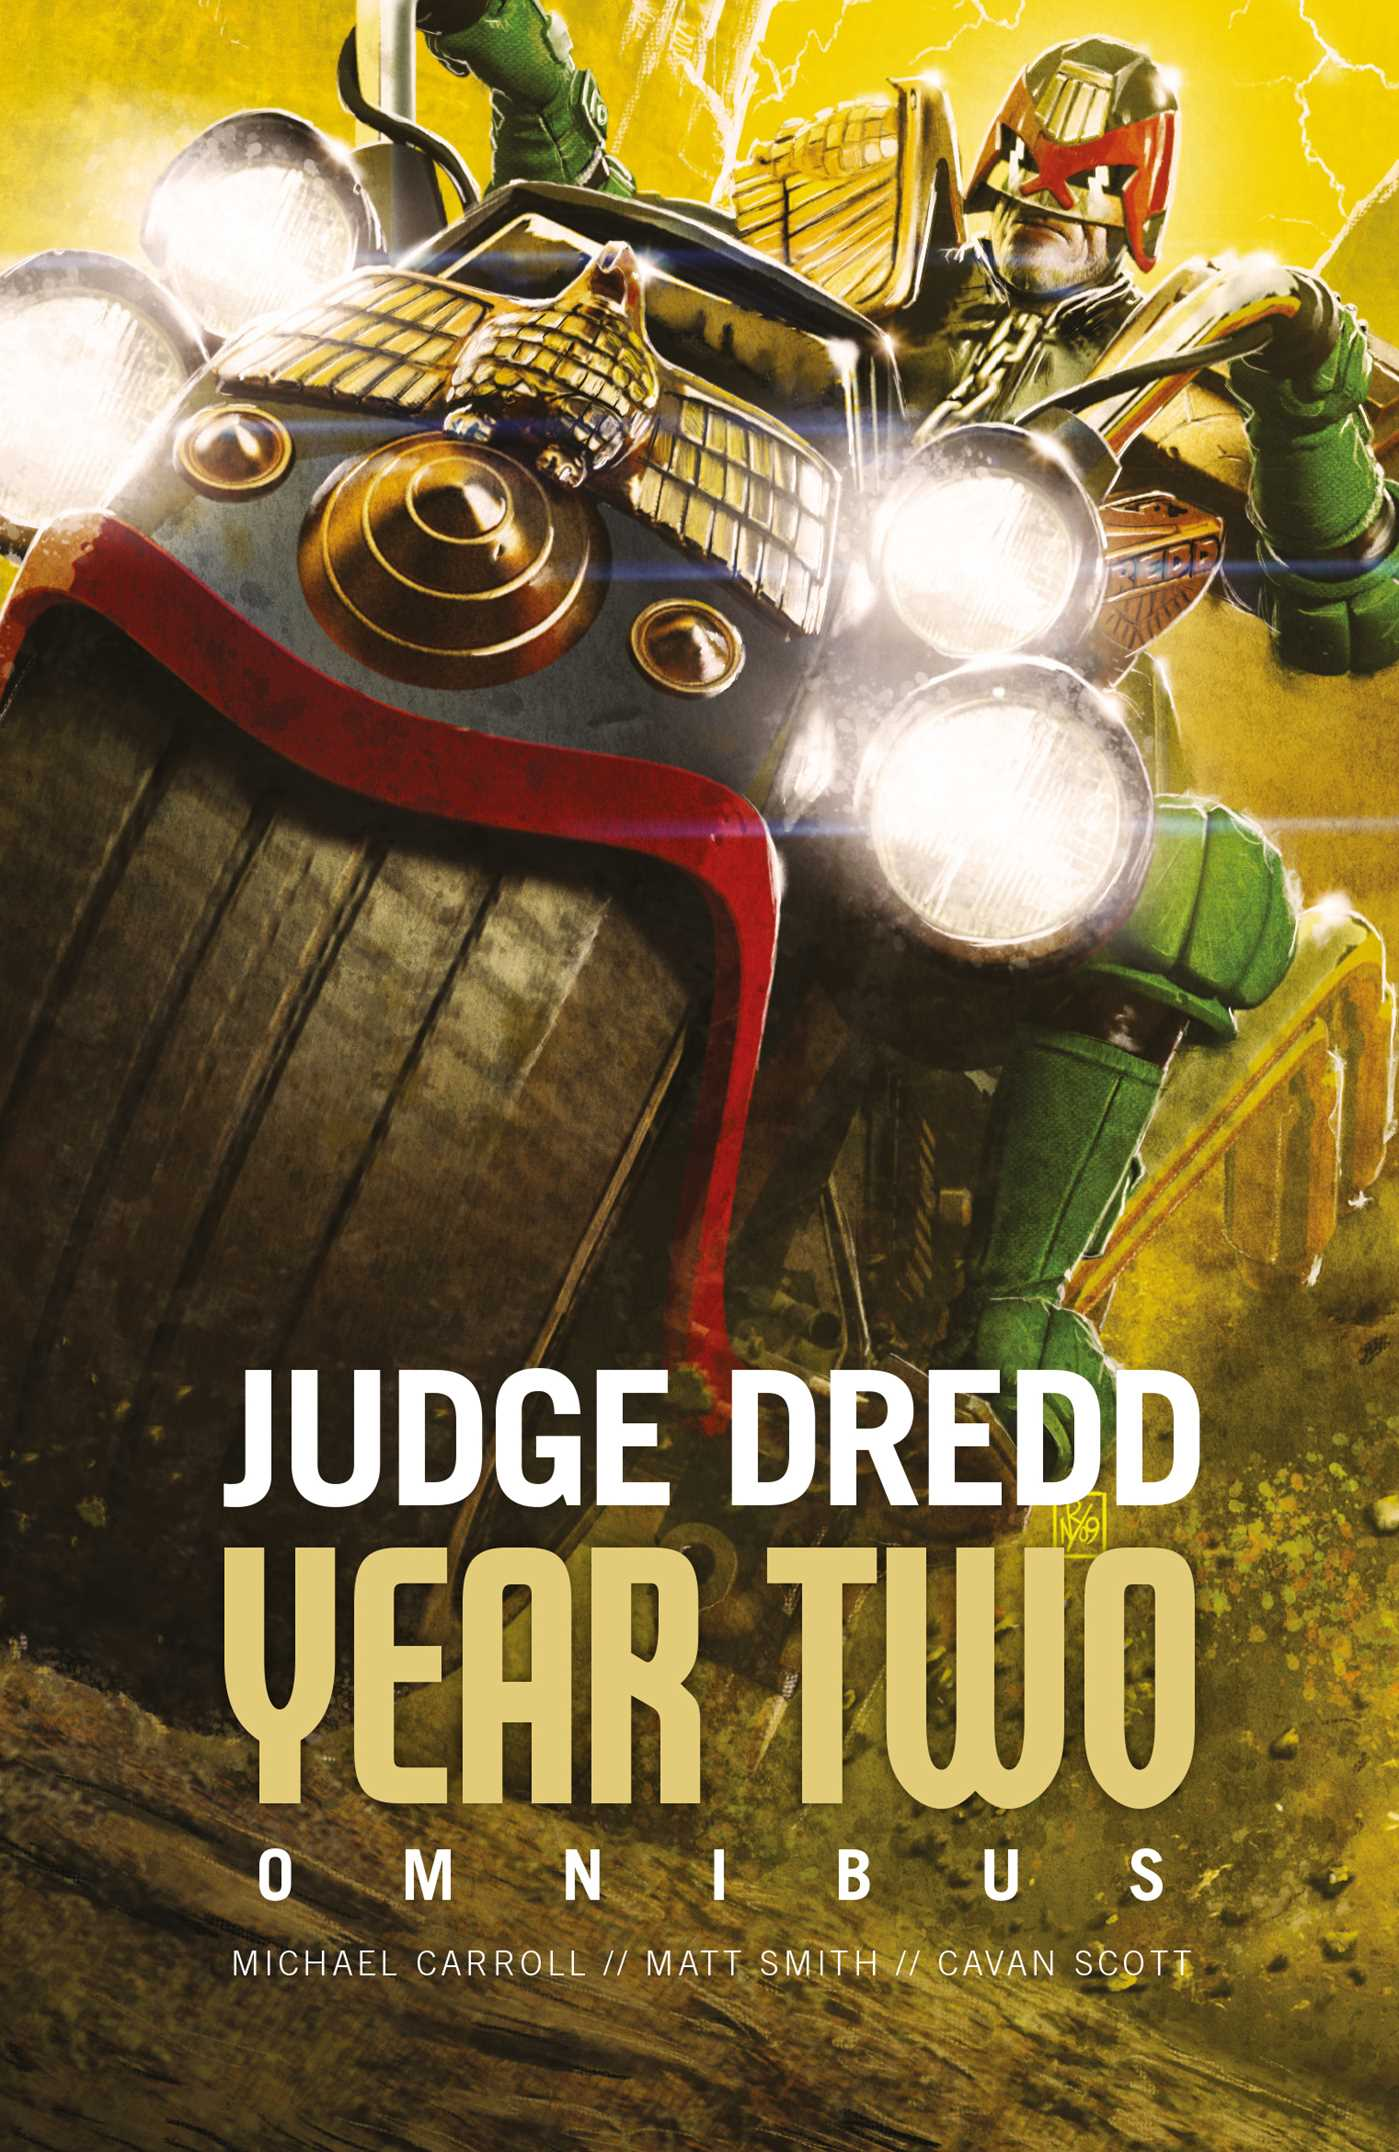 Judge dredd year two 9781781085967 hr